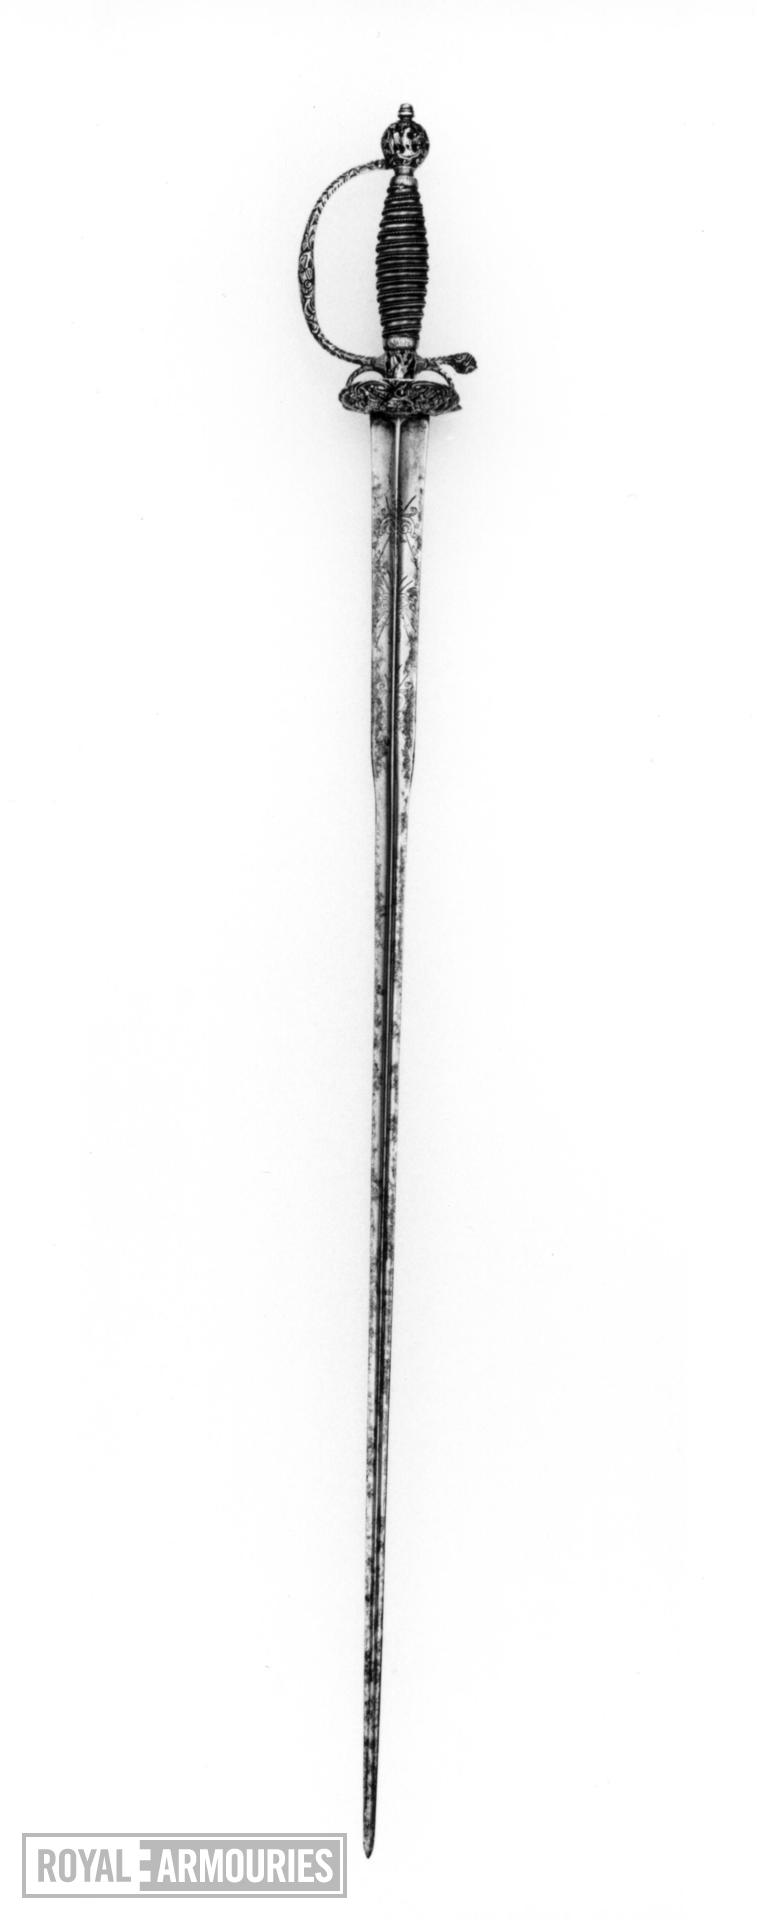 Sword and scabbard Small-sword. Silver hilt by Mary Carman (II), dated 1763-64; sword - A; scabbard - B.